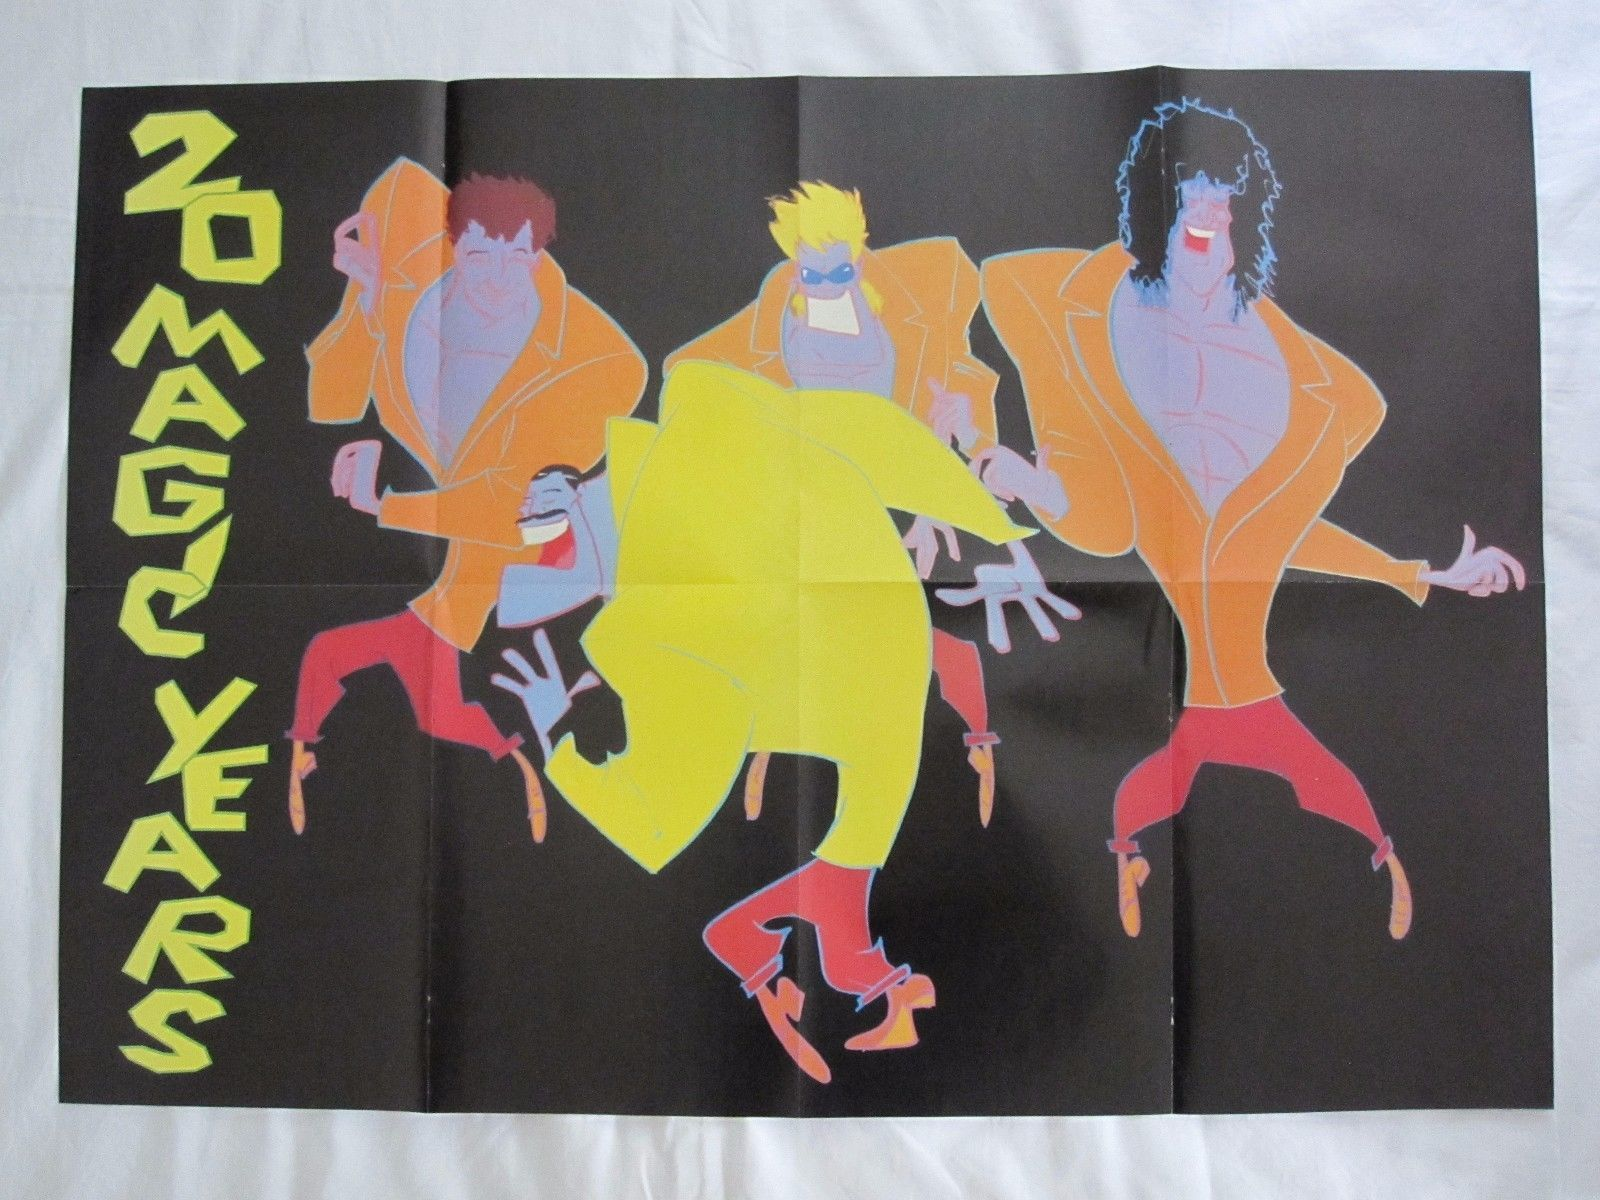 Queen A Kind Of Magic Freddie Mercury Fold Out Poster 20 Years For Sale 14 99 See Photos Money Back Guarantee Double Sided Fold Out Poster Never